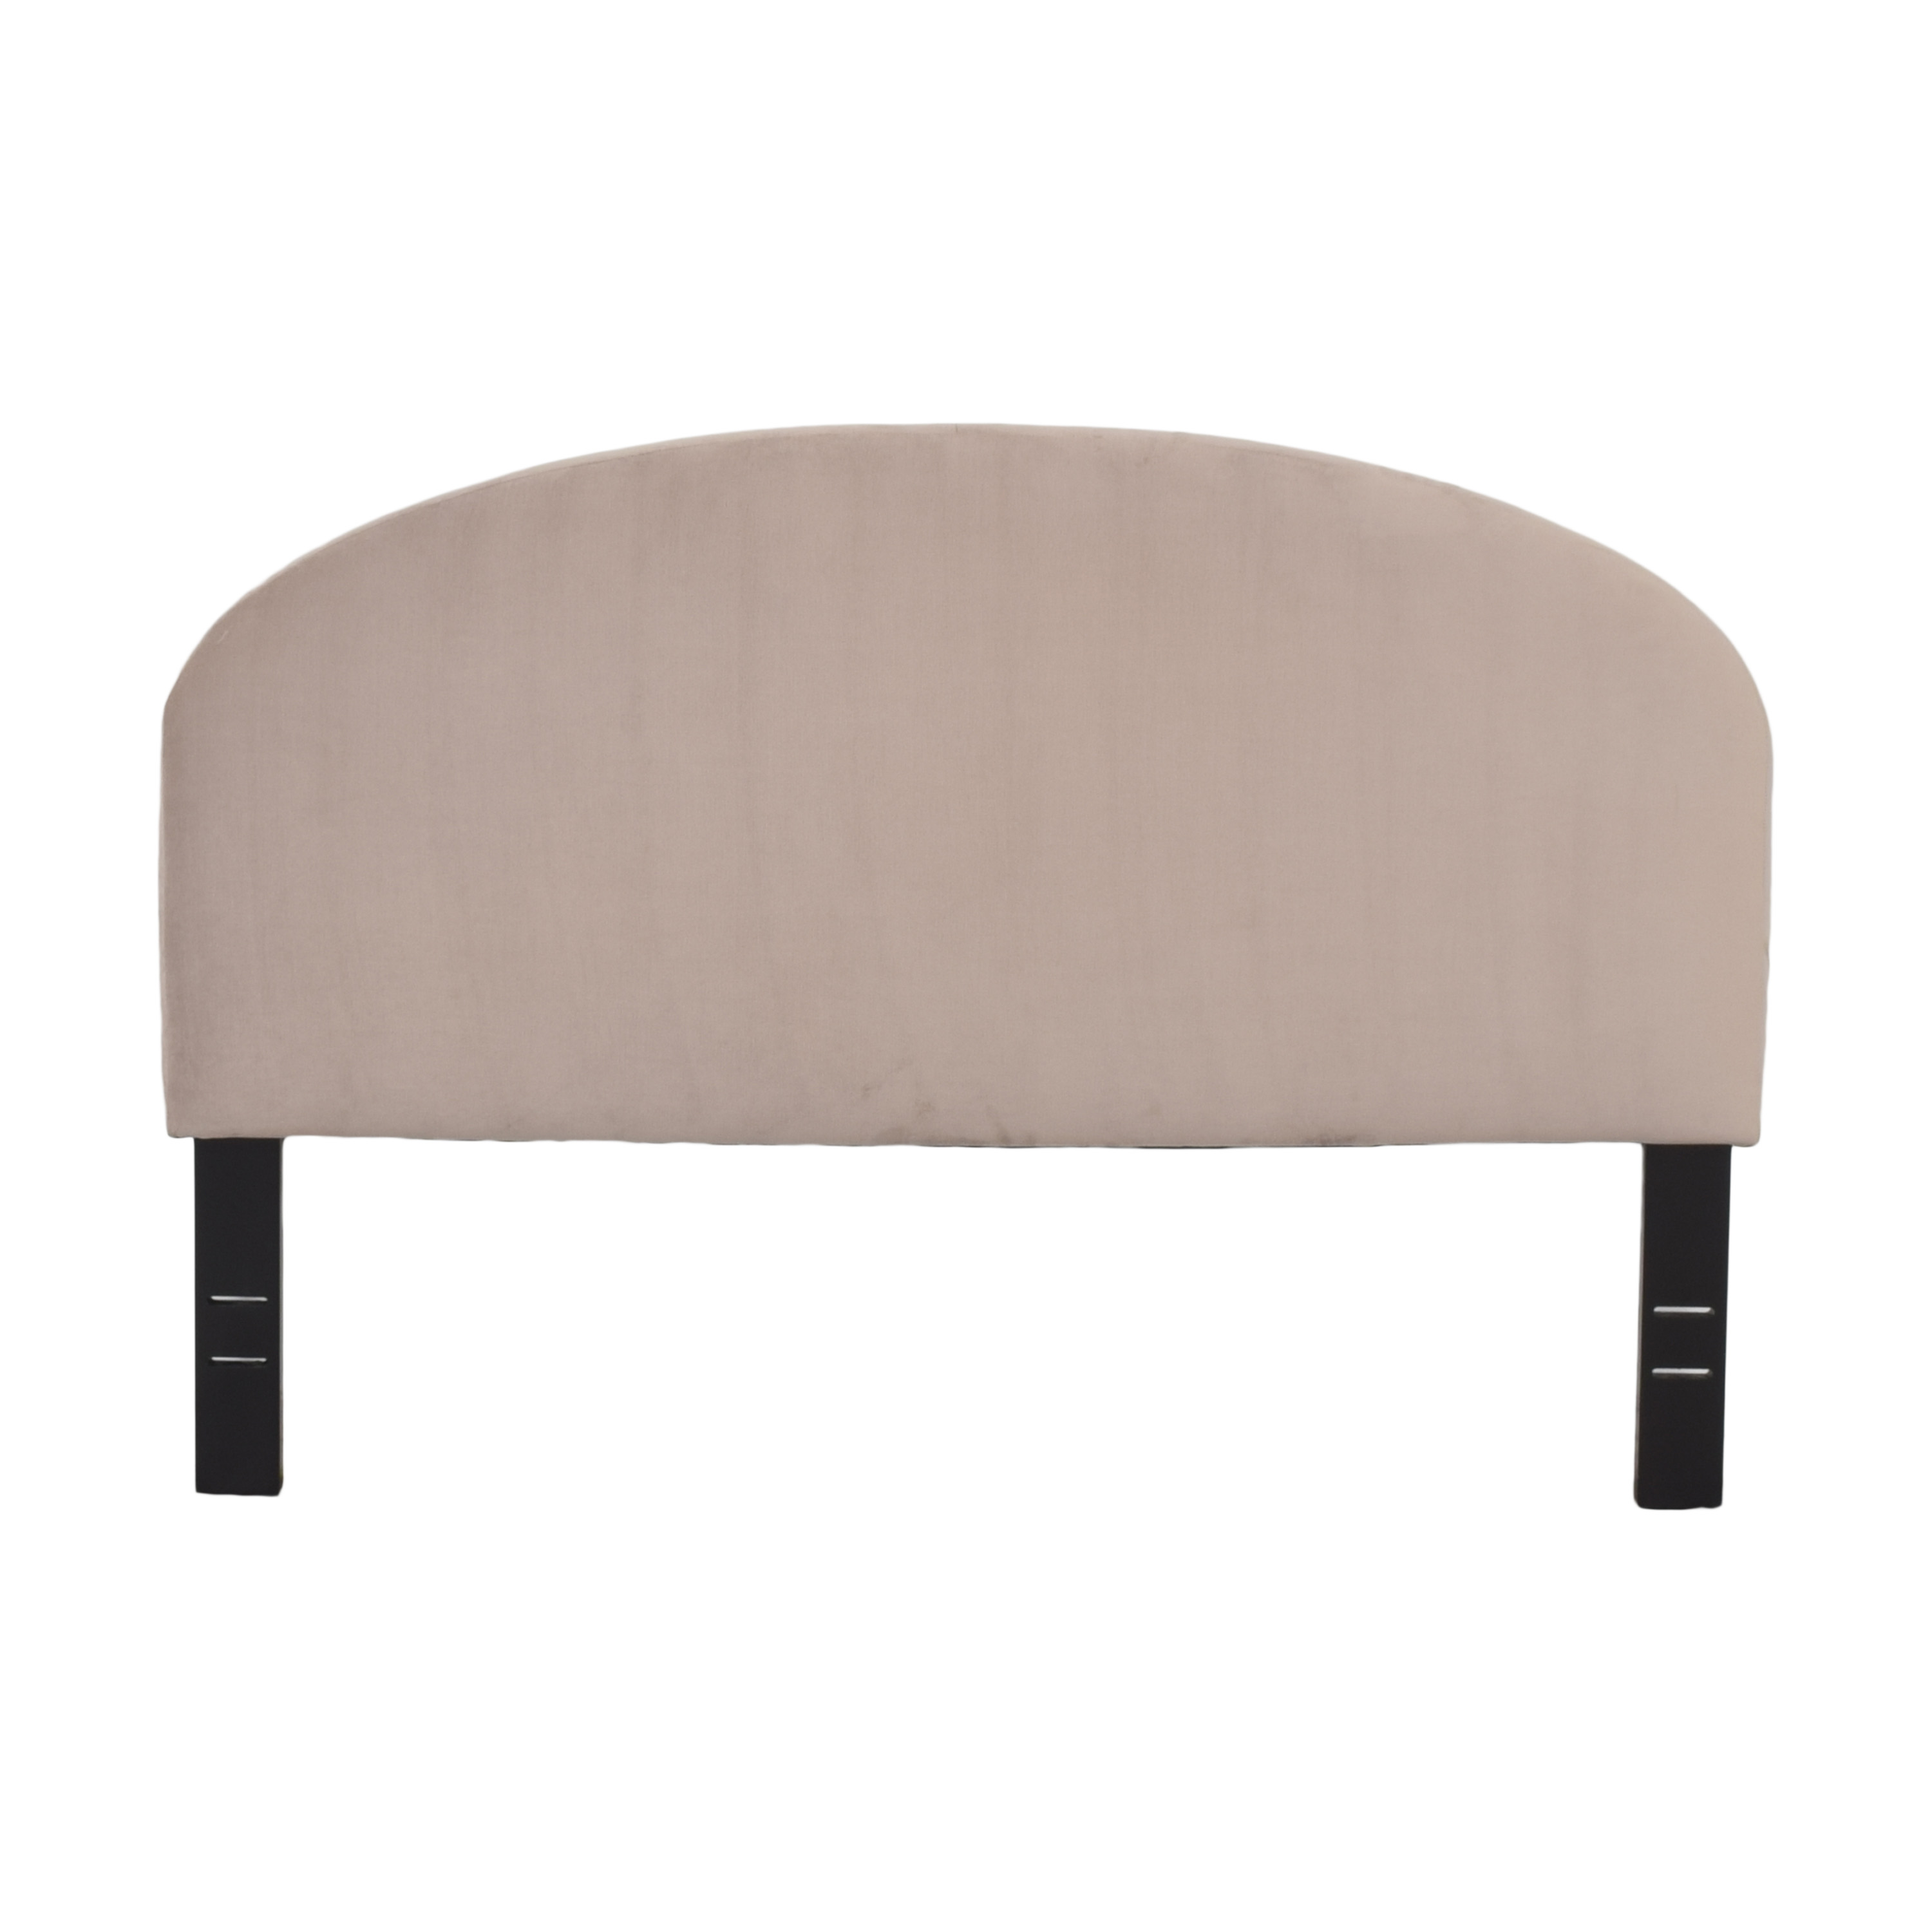 West Elm West Elm Queen Curved Headboard used